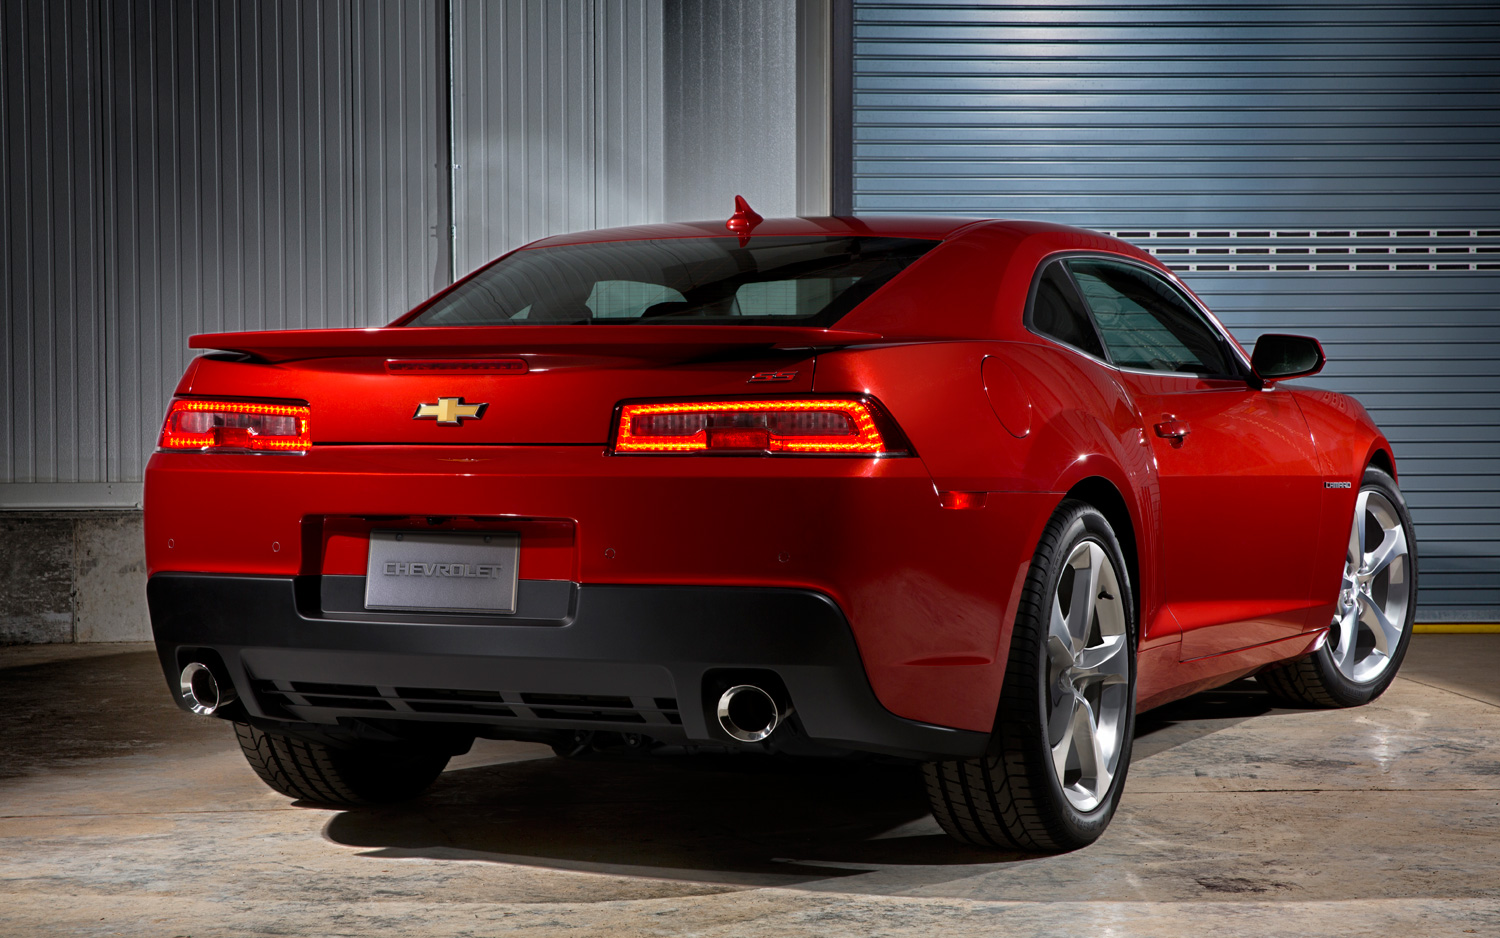 2014 camaro ss styling highlighted in new video new cars reviews. Black Bedroom Furniture Sets. Home Design Ideas